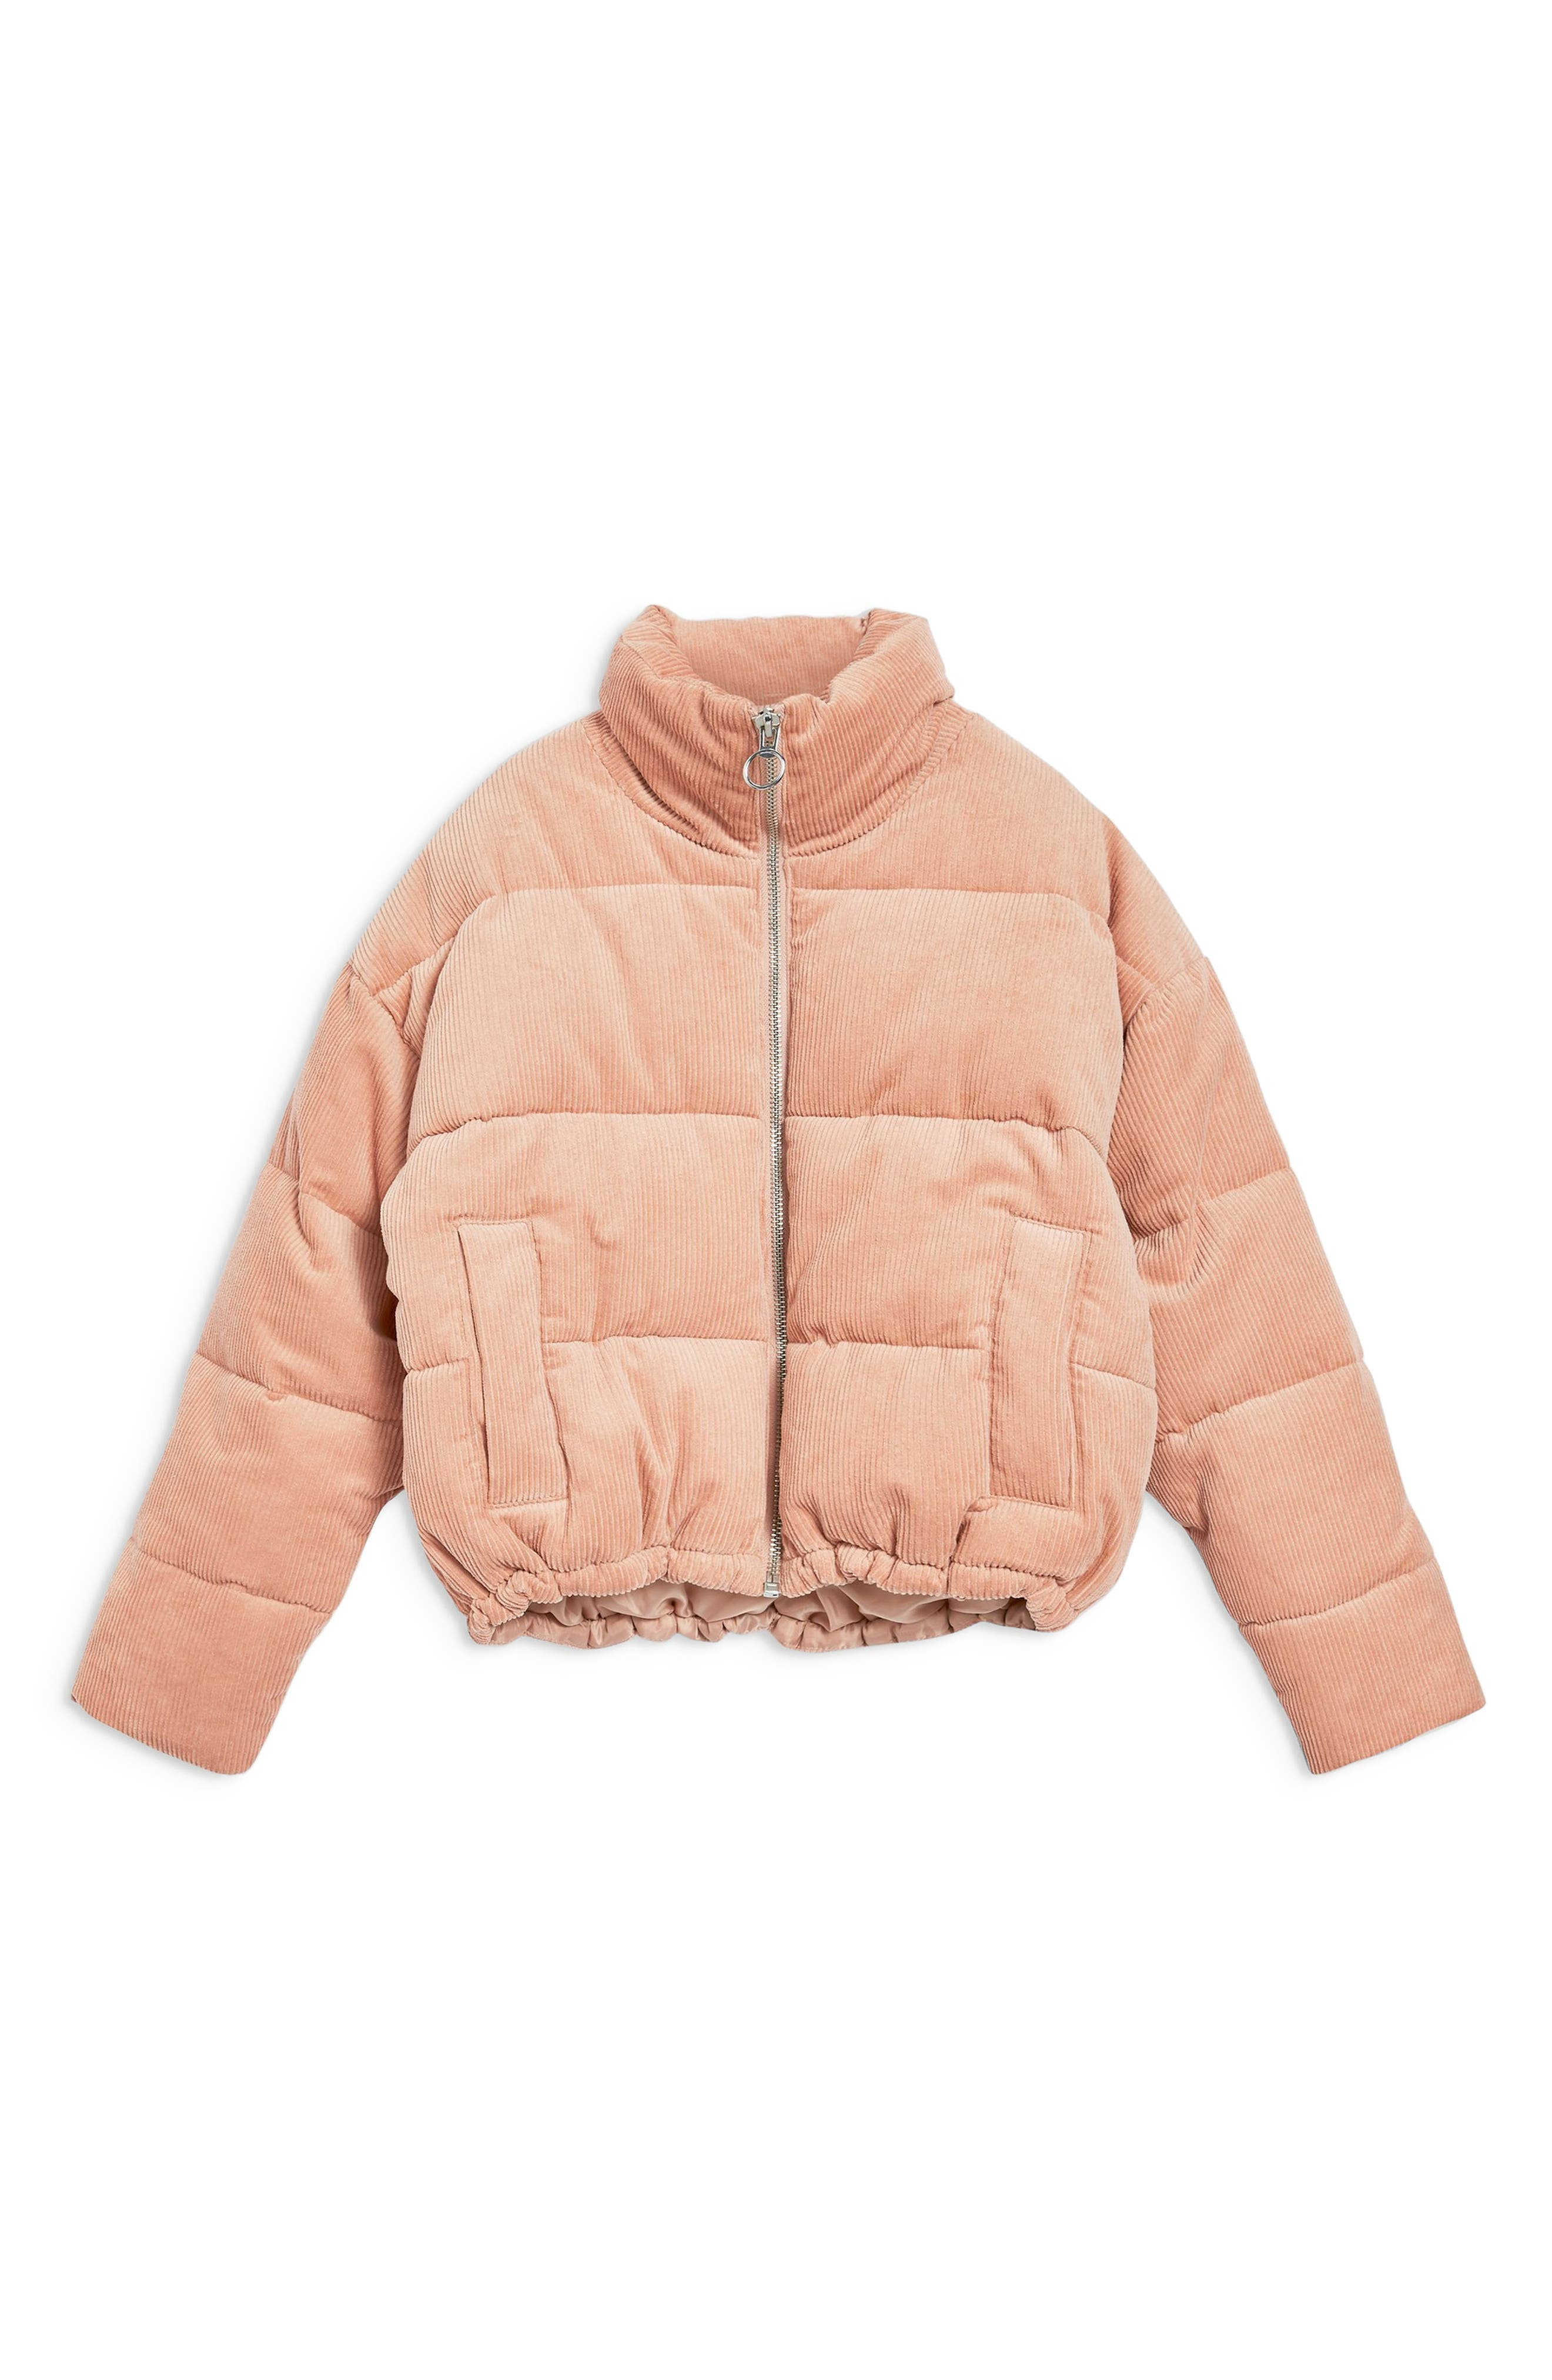 Corduroy Puffer Jacket,                             Alternate thumbnail 6, color,                             650